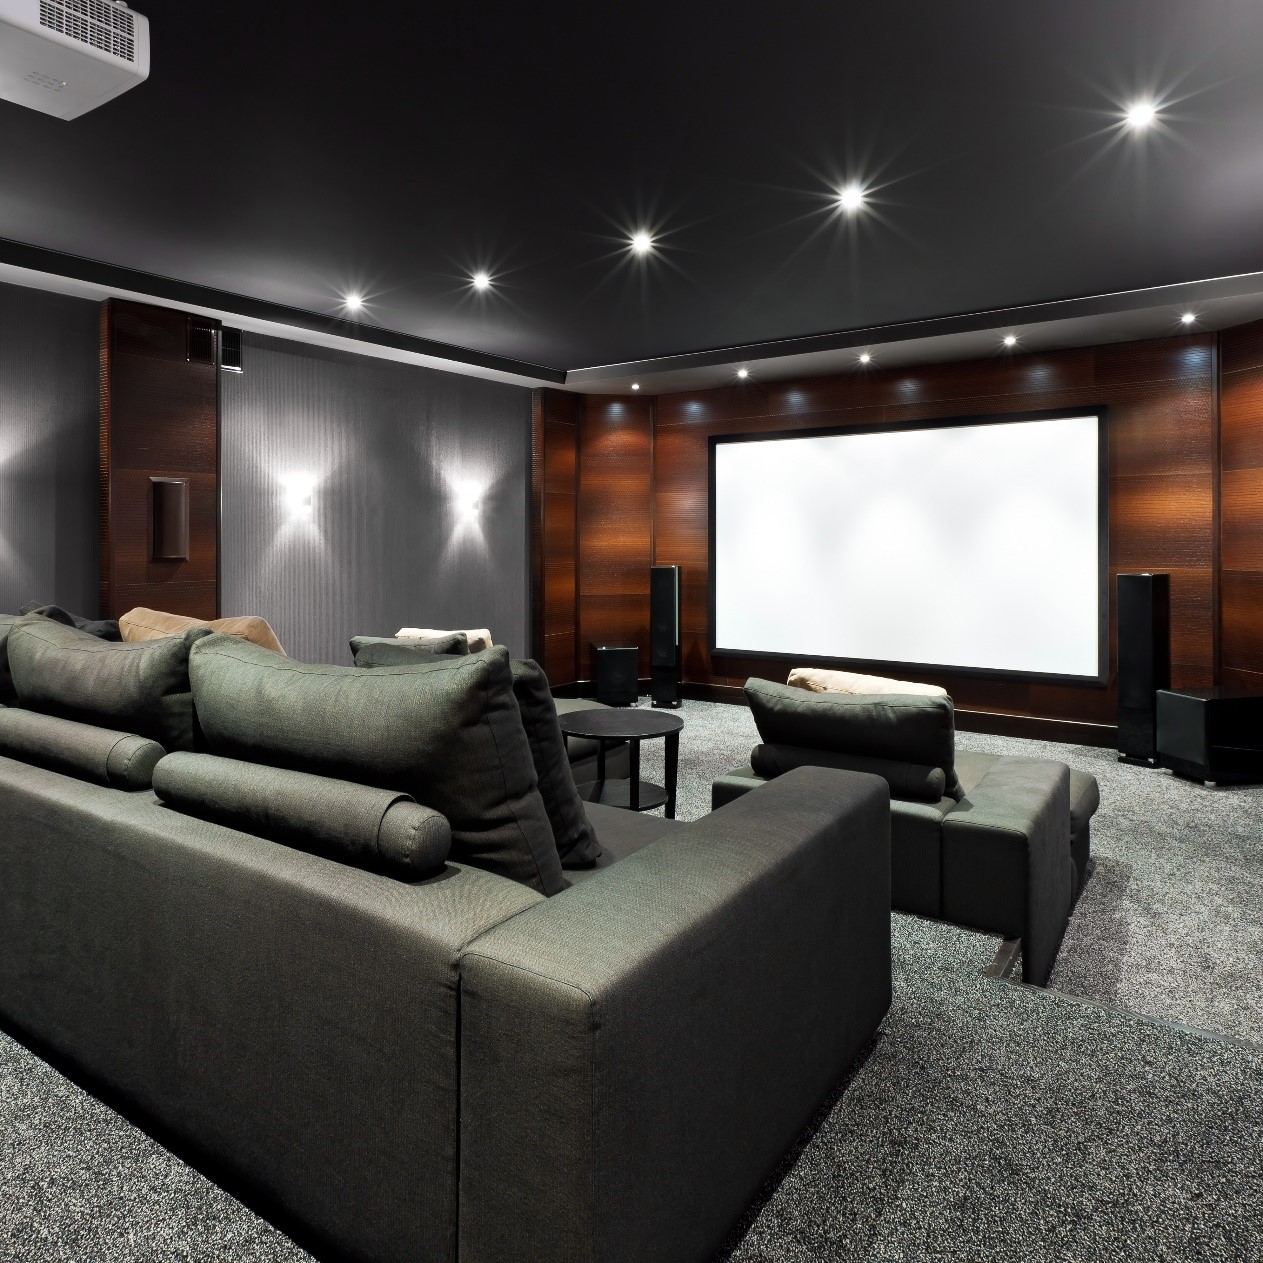 Should You Install 4K Technology in Your Custom Home Theatre?